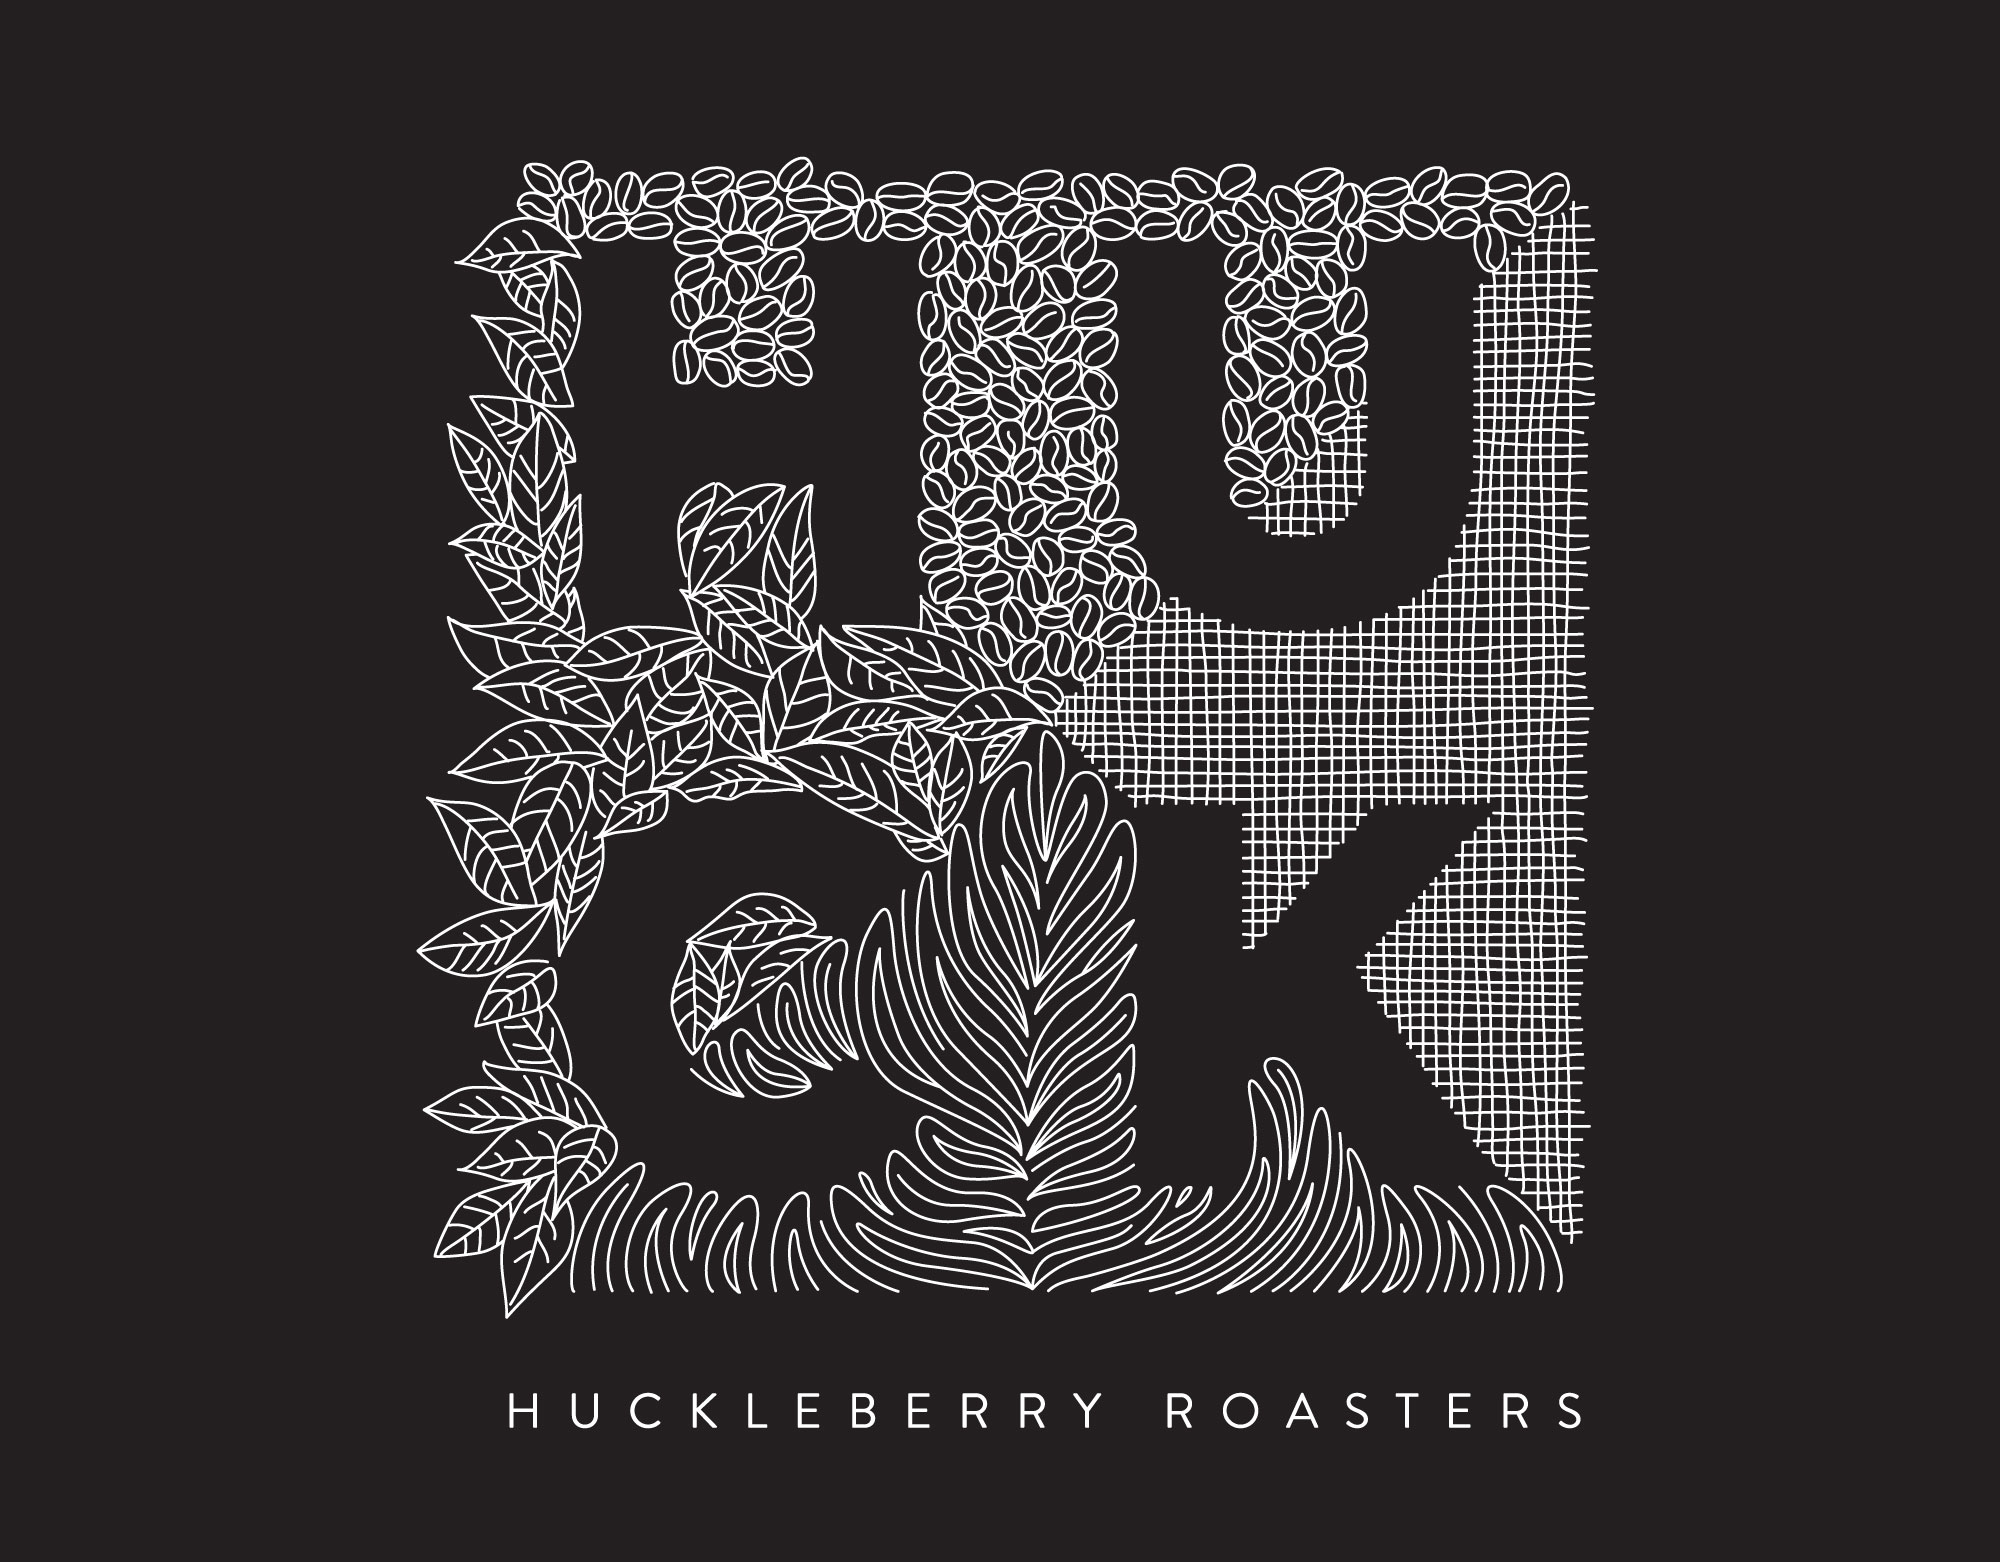 huckleberry-roasters-design-coffee-illustrated-logo-square.jpg